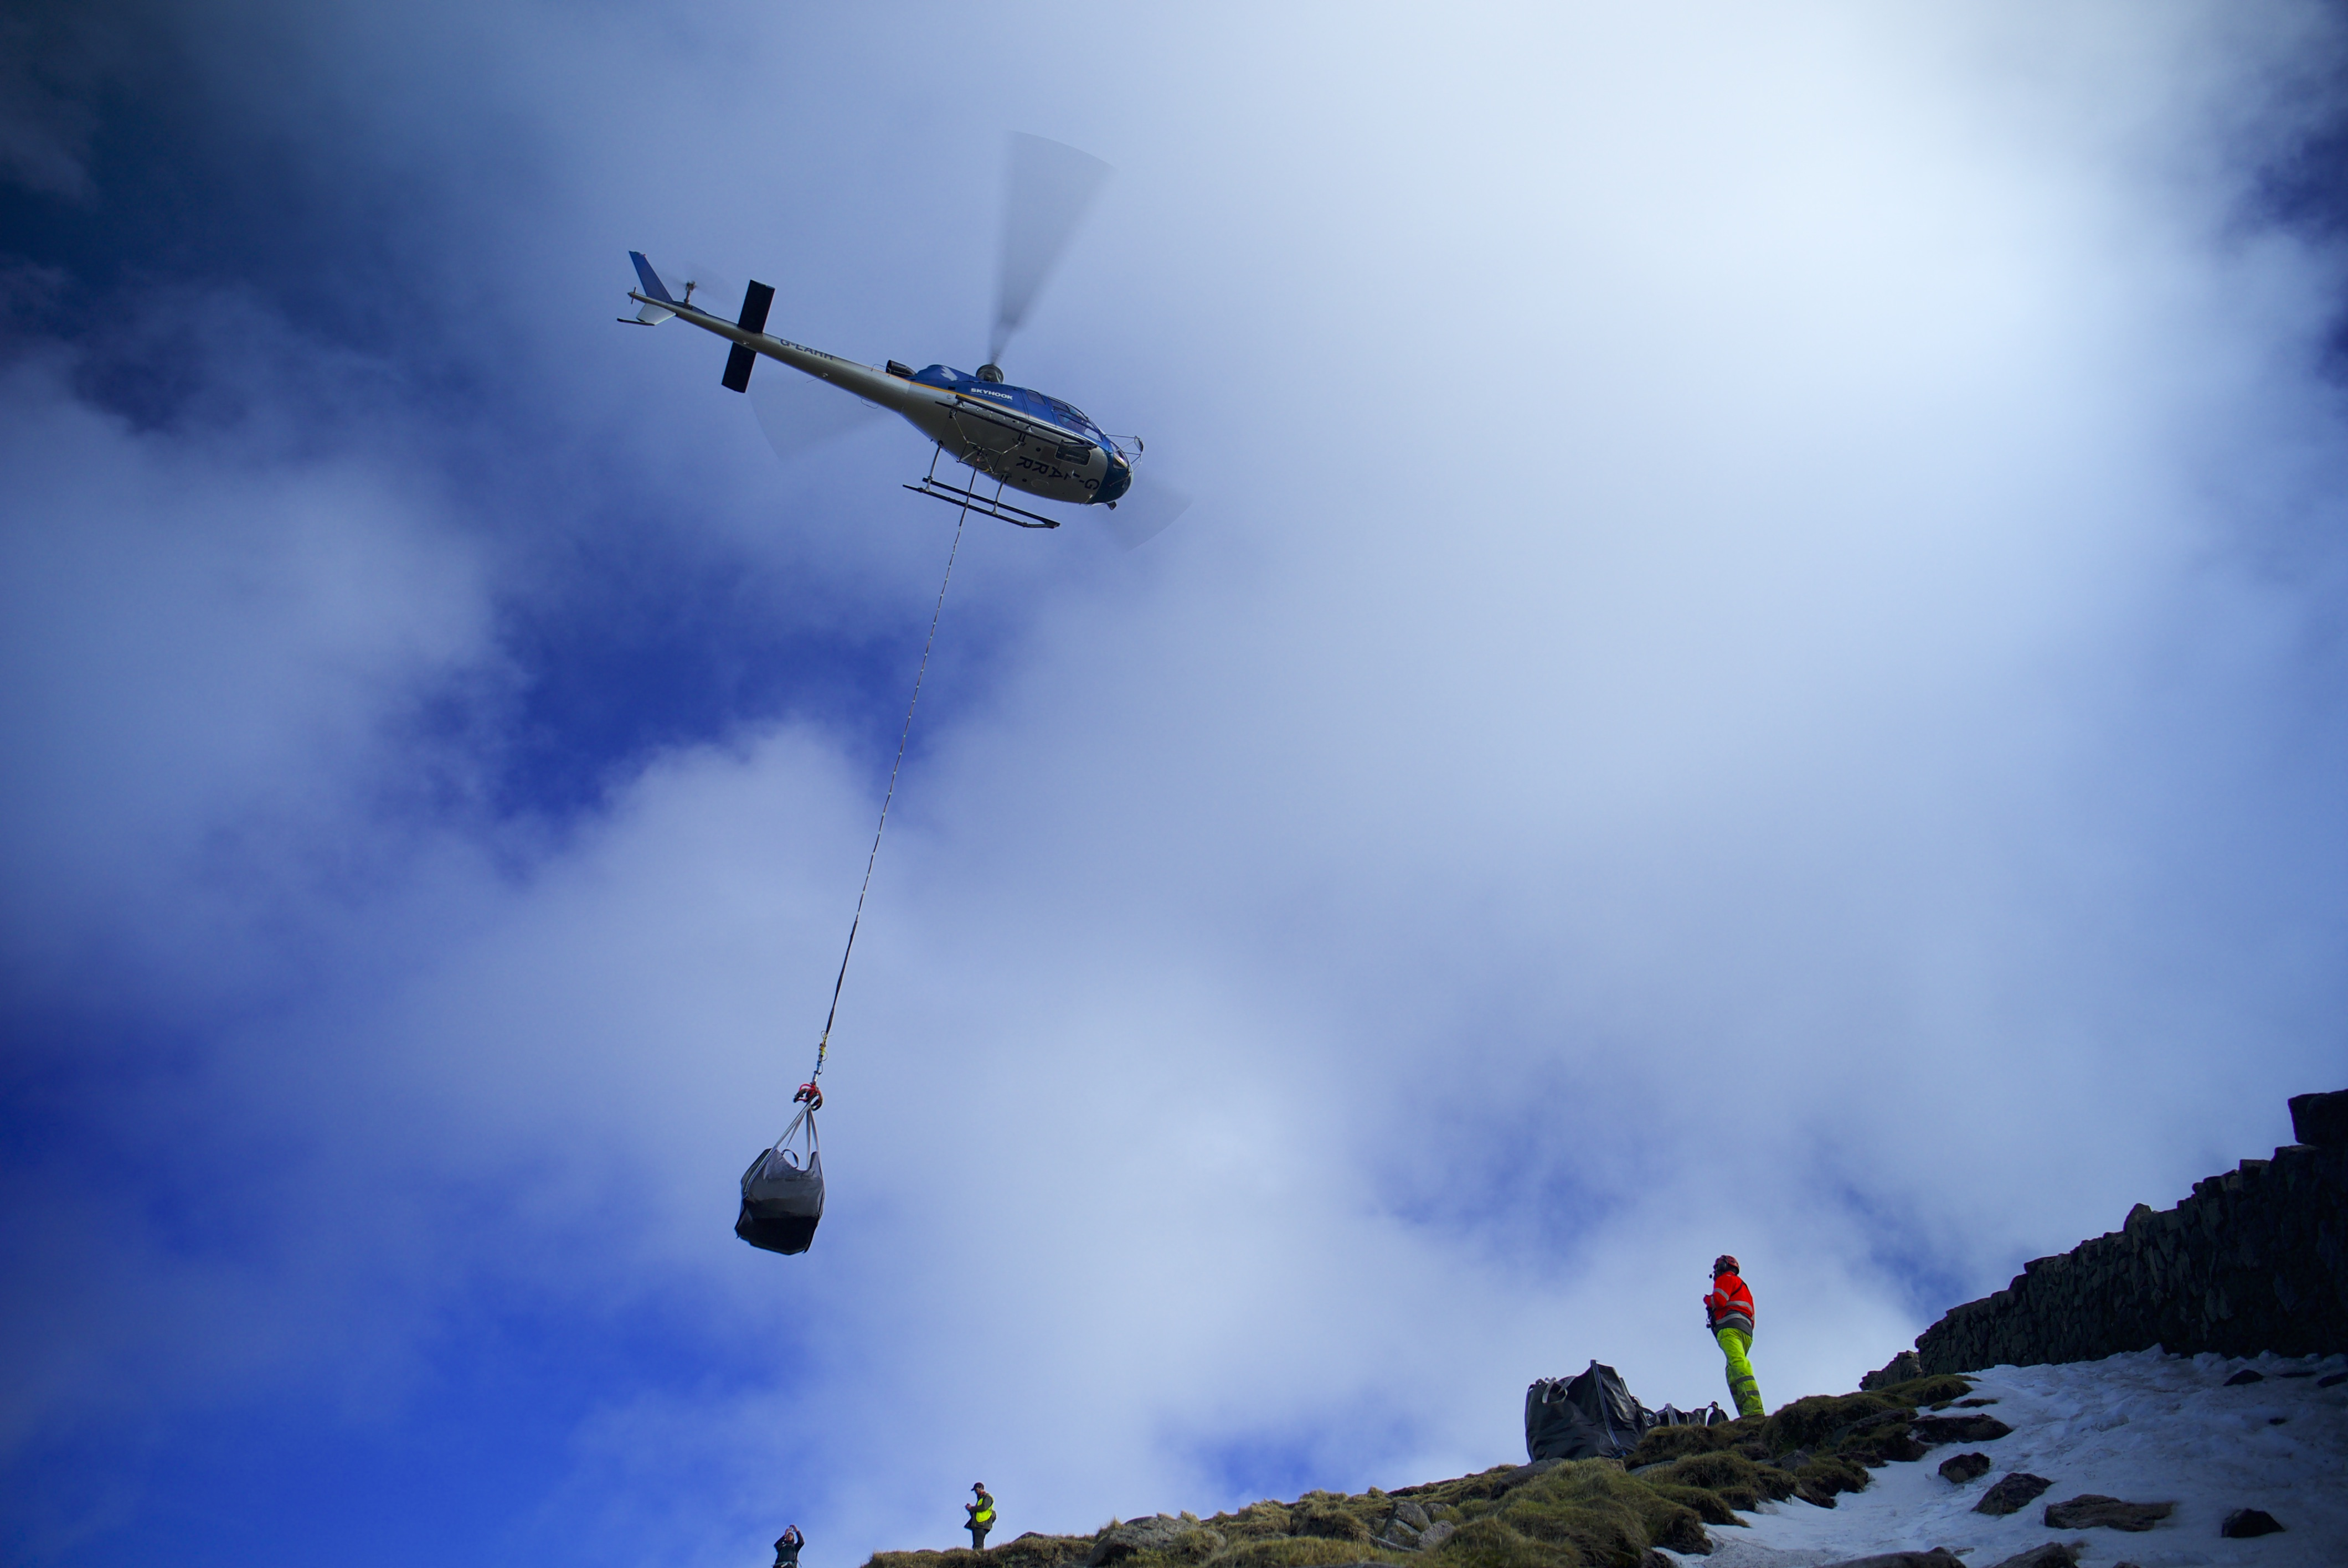 First phase of Mourne Wall Helicopter Drops Complete